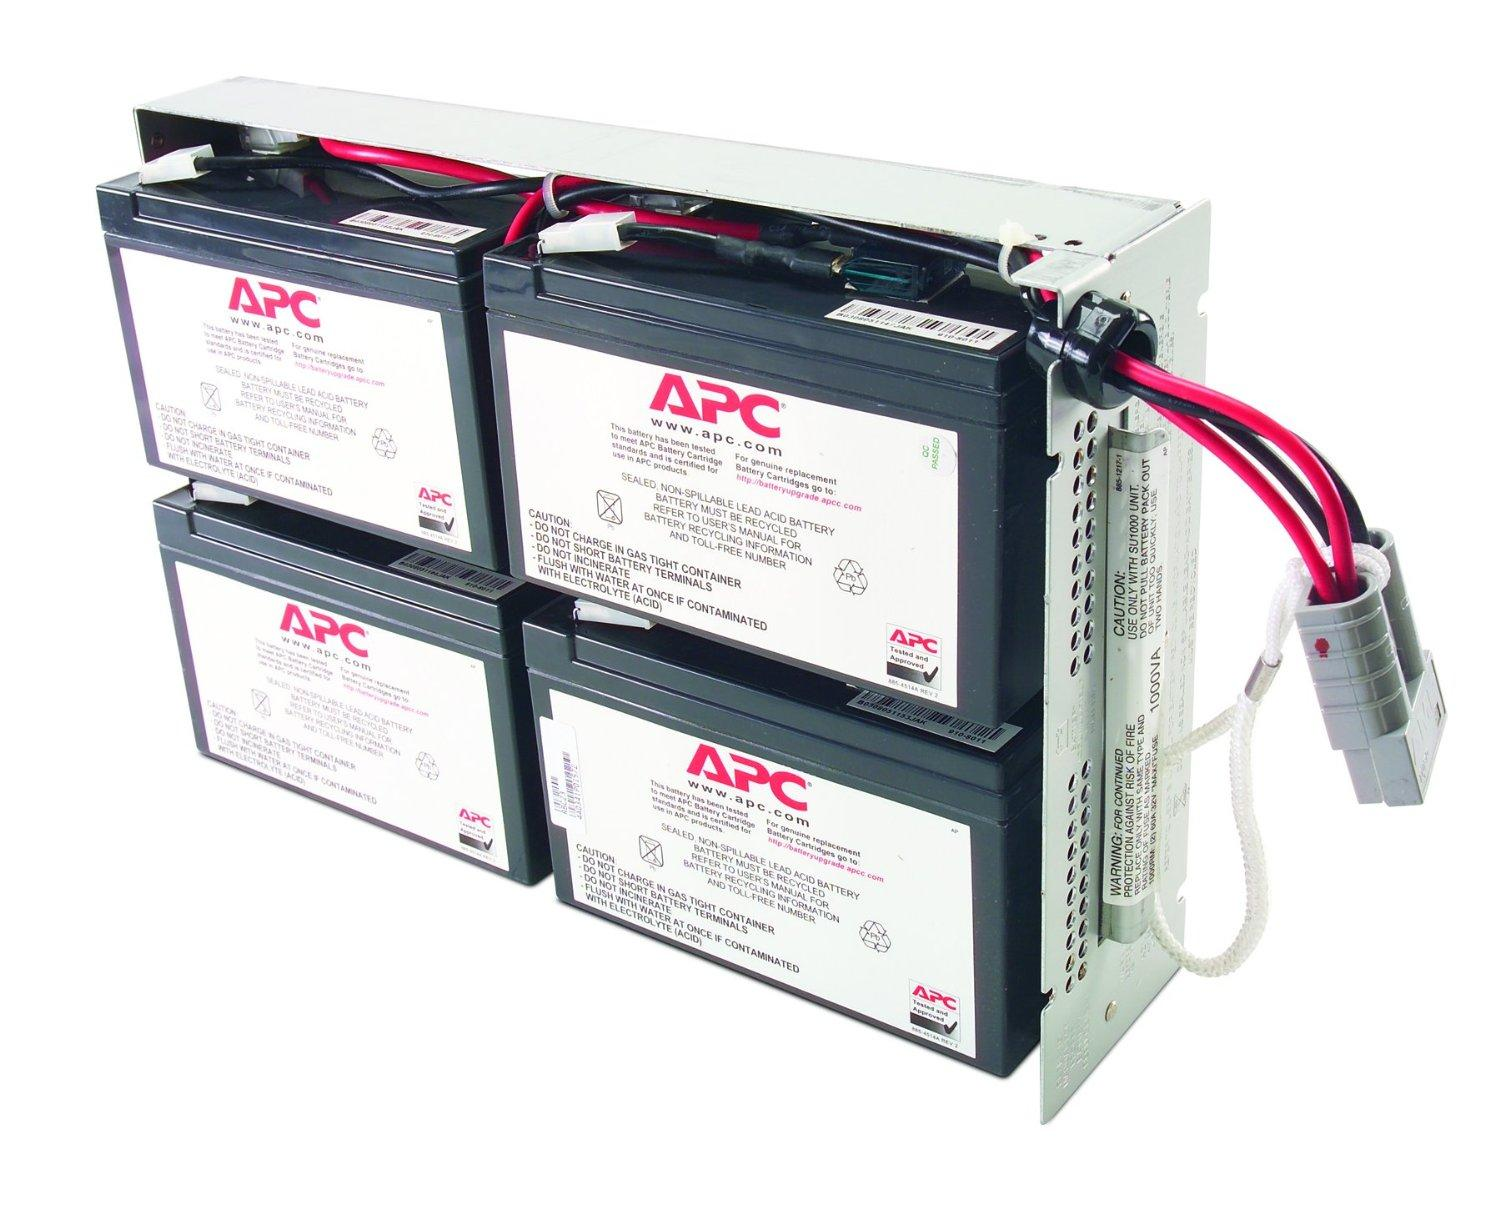 [DIAGRAM_34OR]  933 Apc 1500 Battery Wiring Diagram Fre | Wiring Resources | Apc Smart Ups 1500 Battery Wiring Diagram |  | Wiring Resources